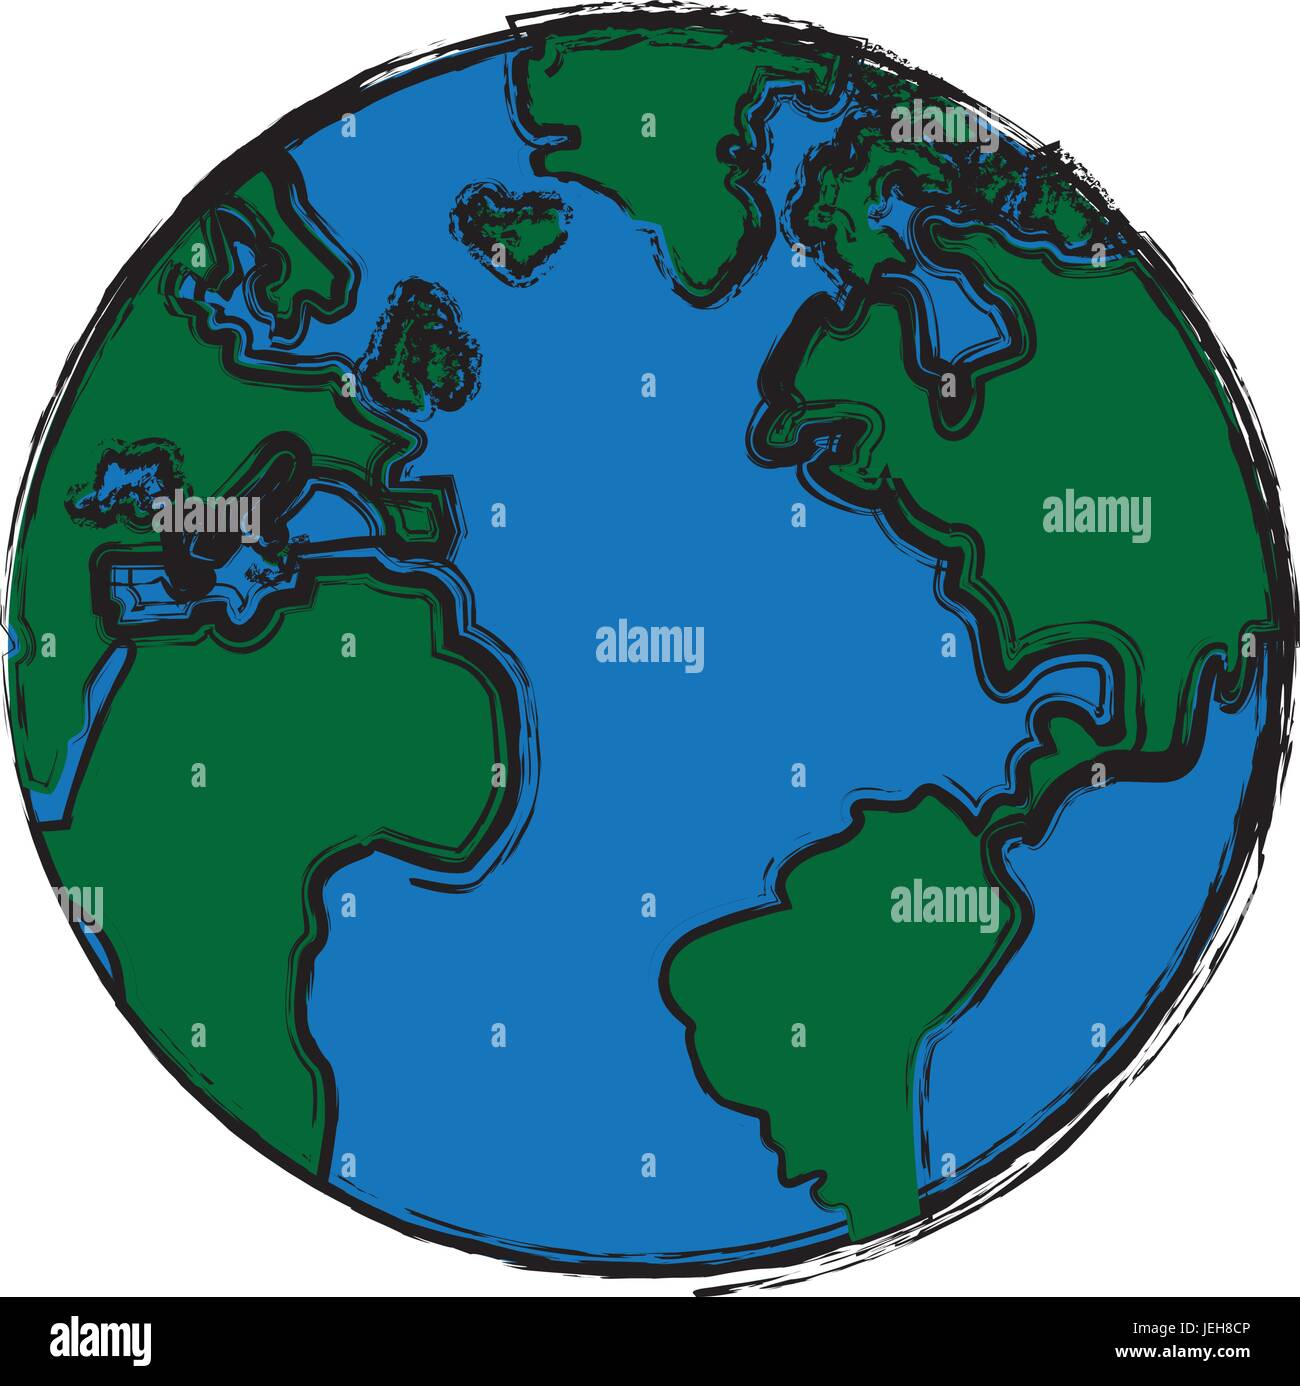 global world earth map round Stock Vector Art & Illustration ... on global telecommunications provider, global nepal map, global wine map, global air traffic control map, europe map, global sports map, global technology map, global map south africa, global information systems, global christianity map, new zealand global map, earth real-time wind map, global earth, global risk game map, current global weather map, global population distribution map, global political map, global culture map, global time map, global temperature rise,